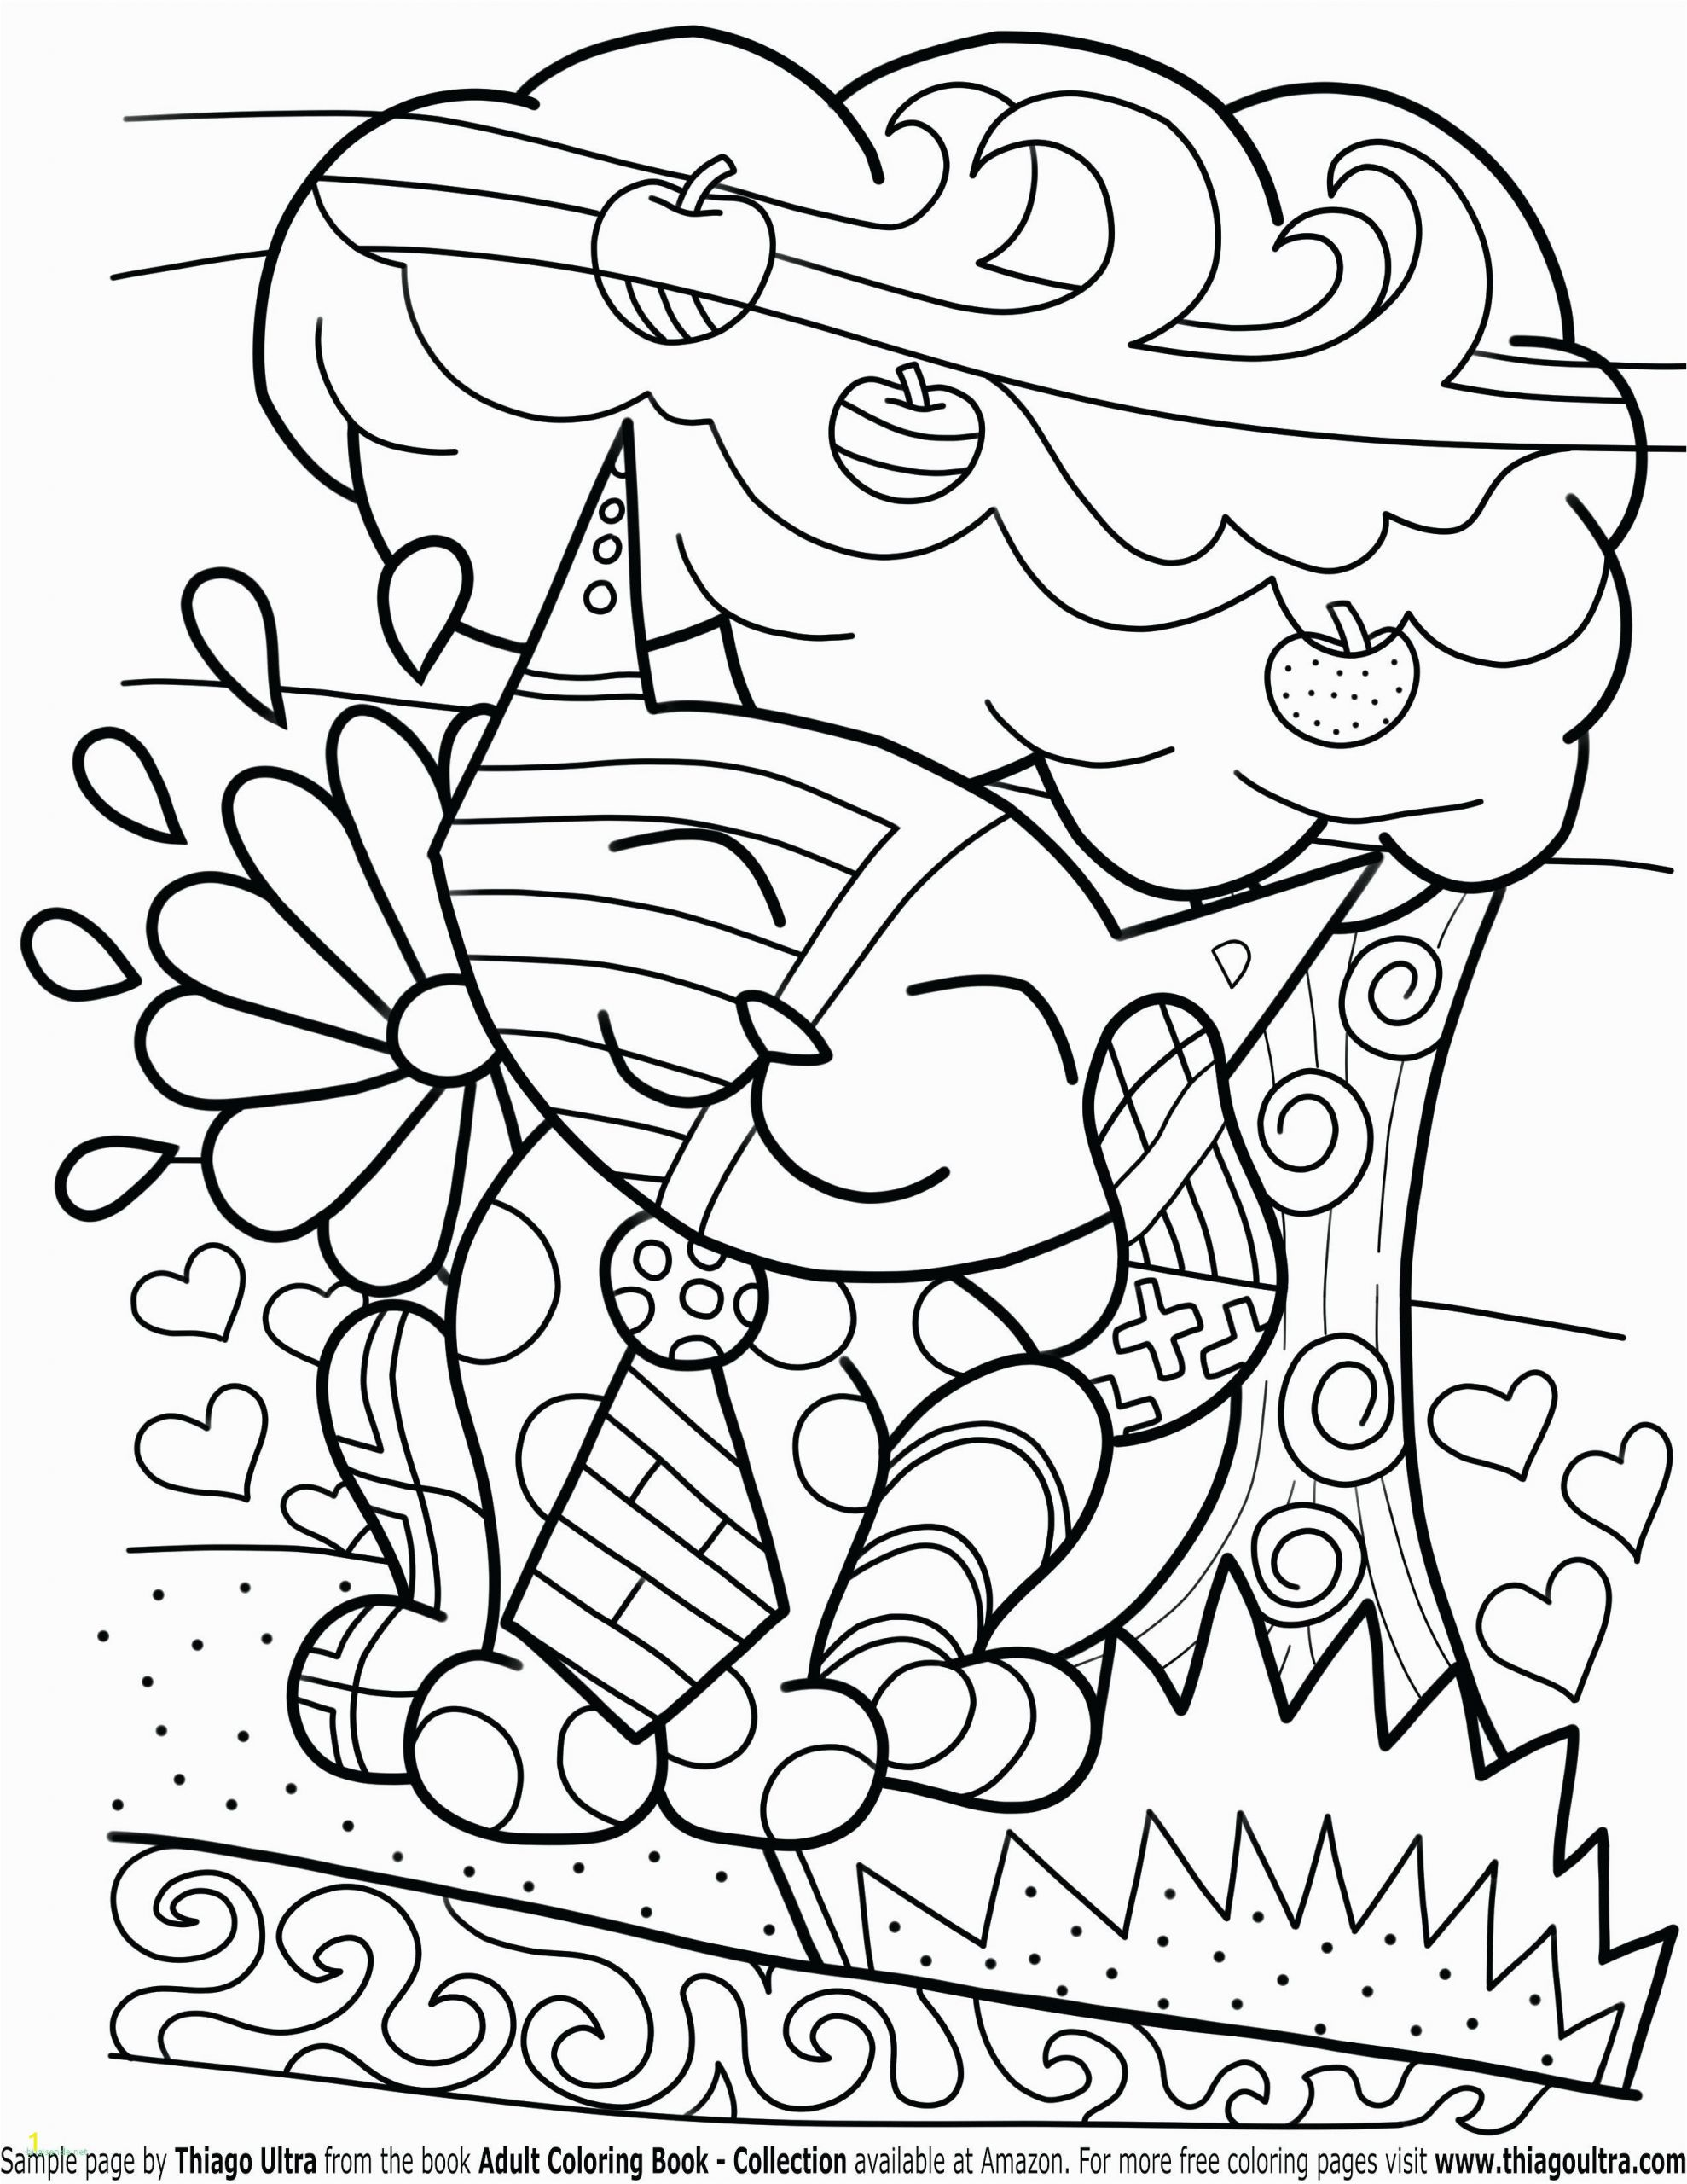 free printable wedding coloring pages beautiful collection kids joyous of cars books reception thermalprint co best adult diamond page manga cartoon thanksgiving dot